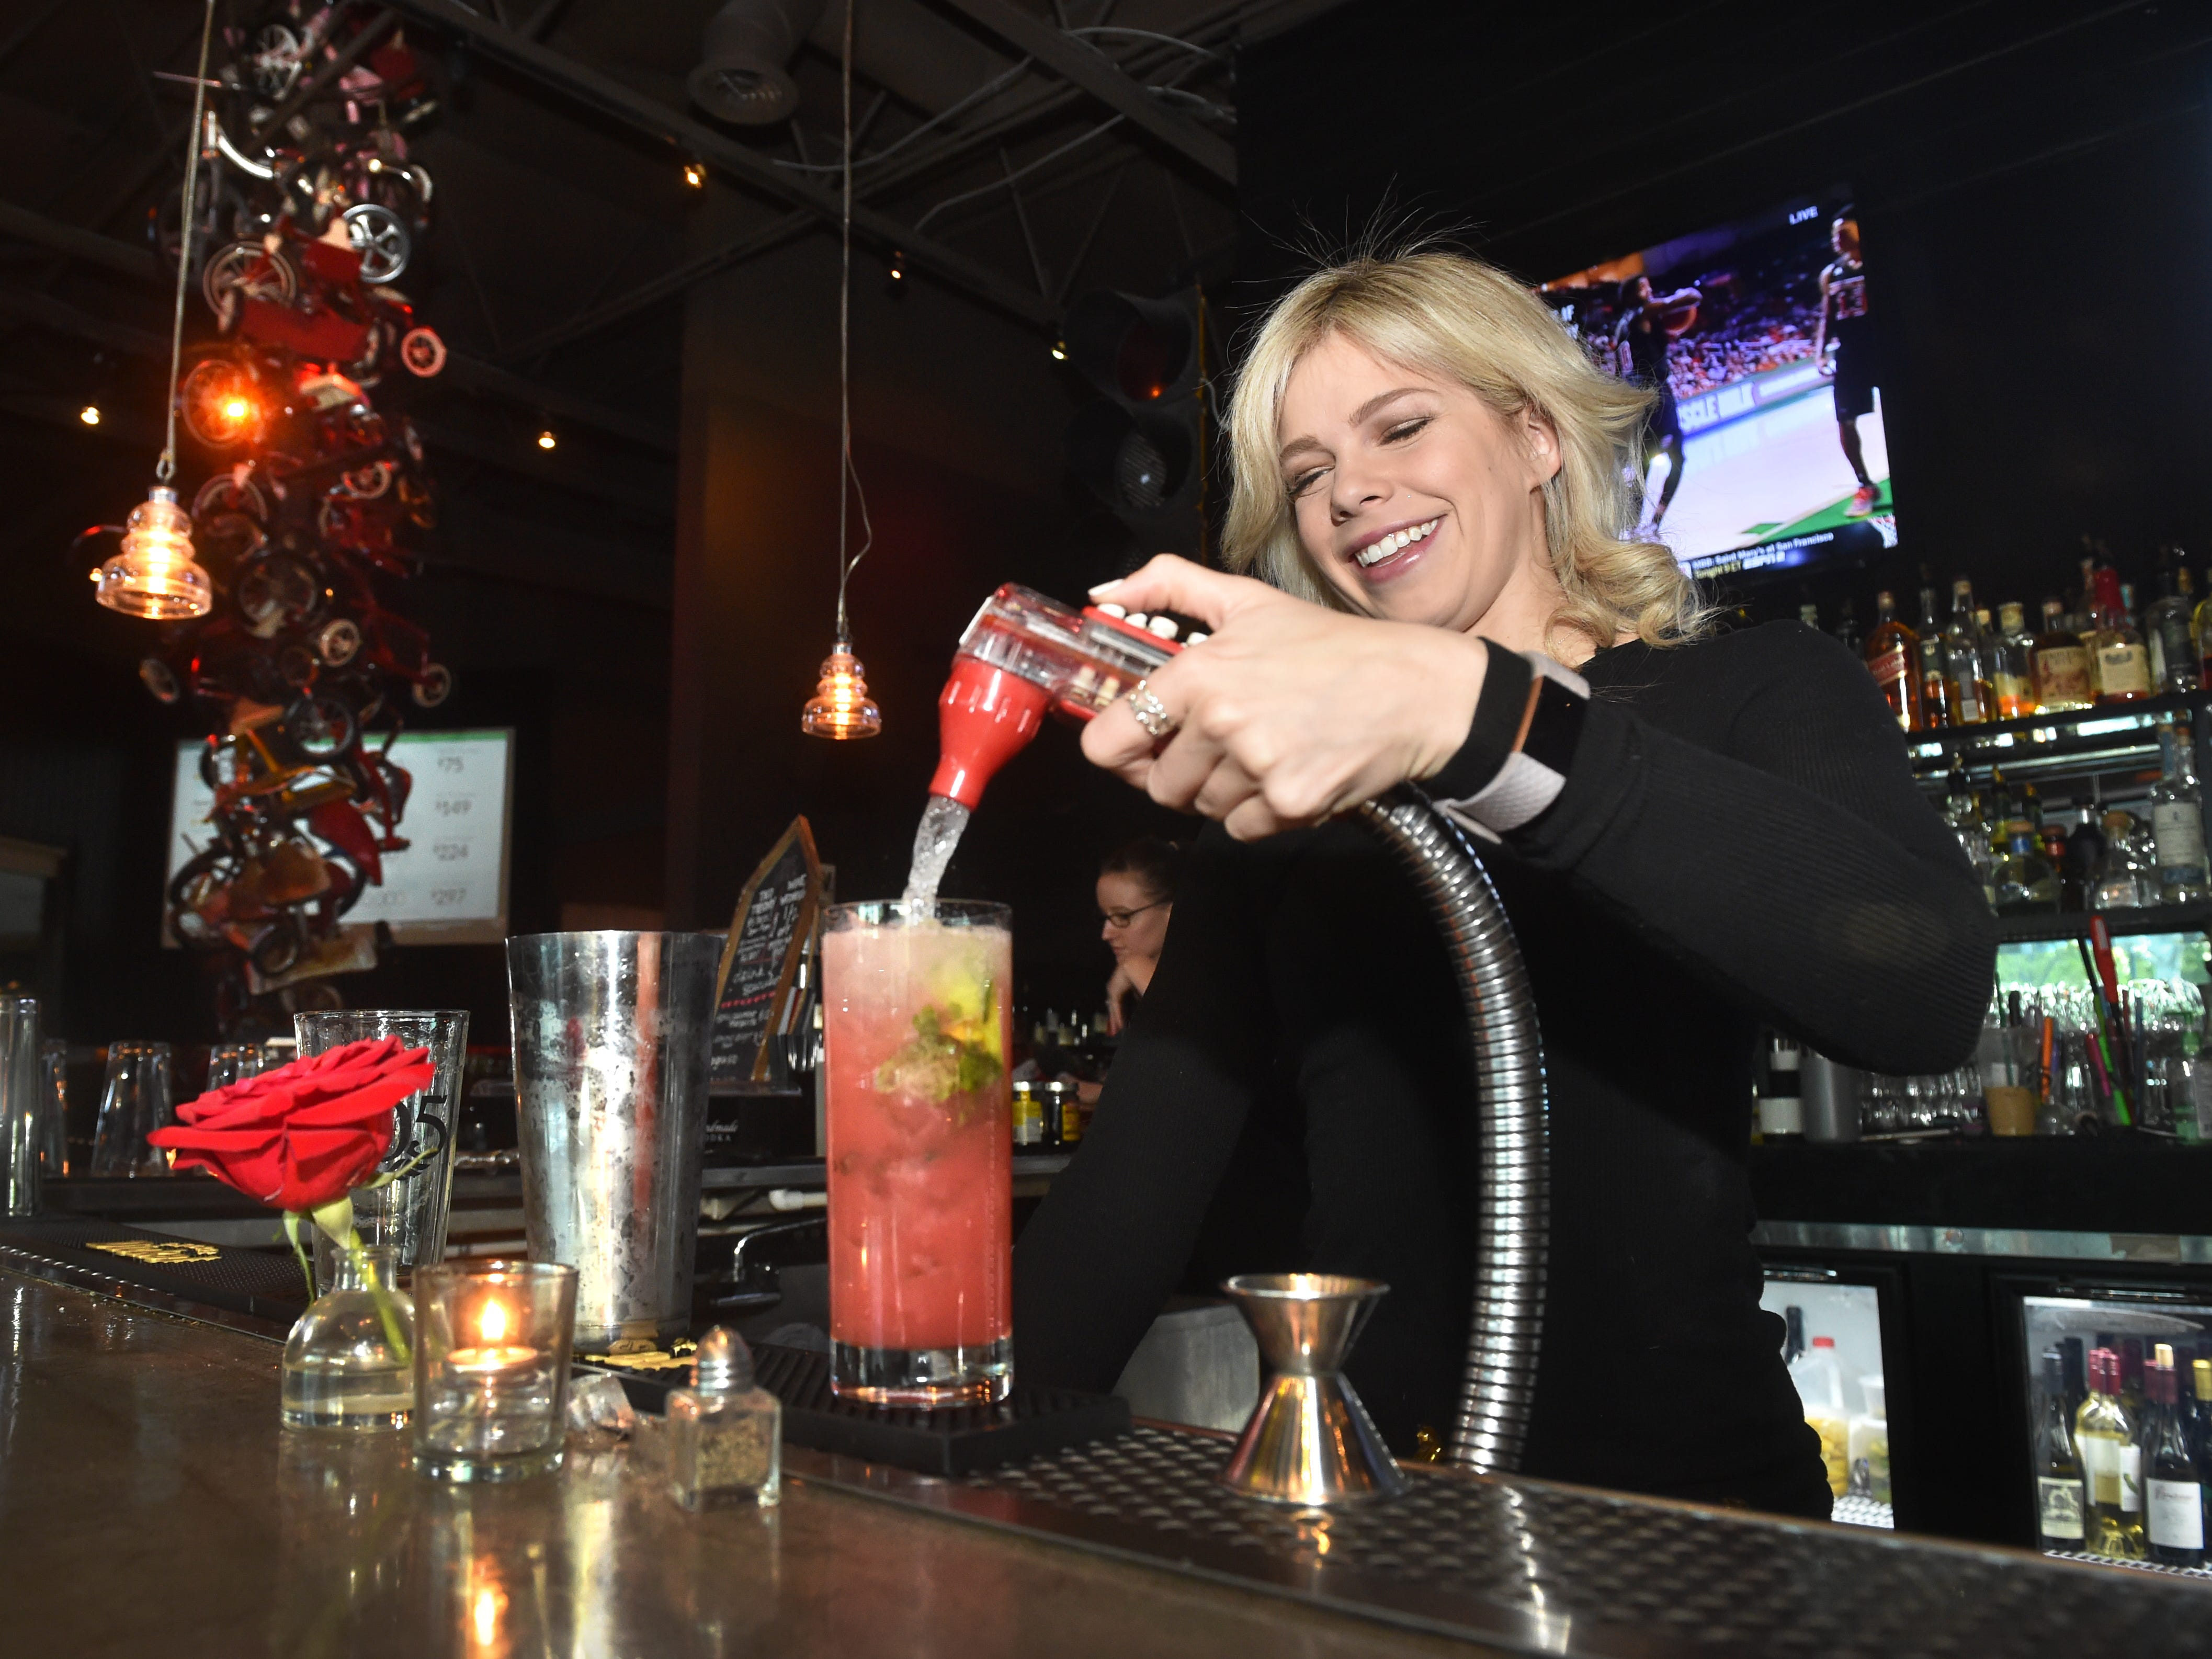 Katie Ray, the bar manager at The Park Restaurant and Bar in Oak Park, mixes a cocktail at the bar on Thursday.